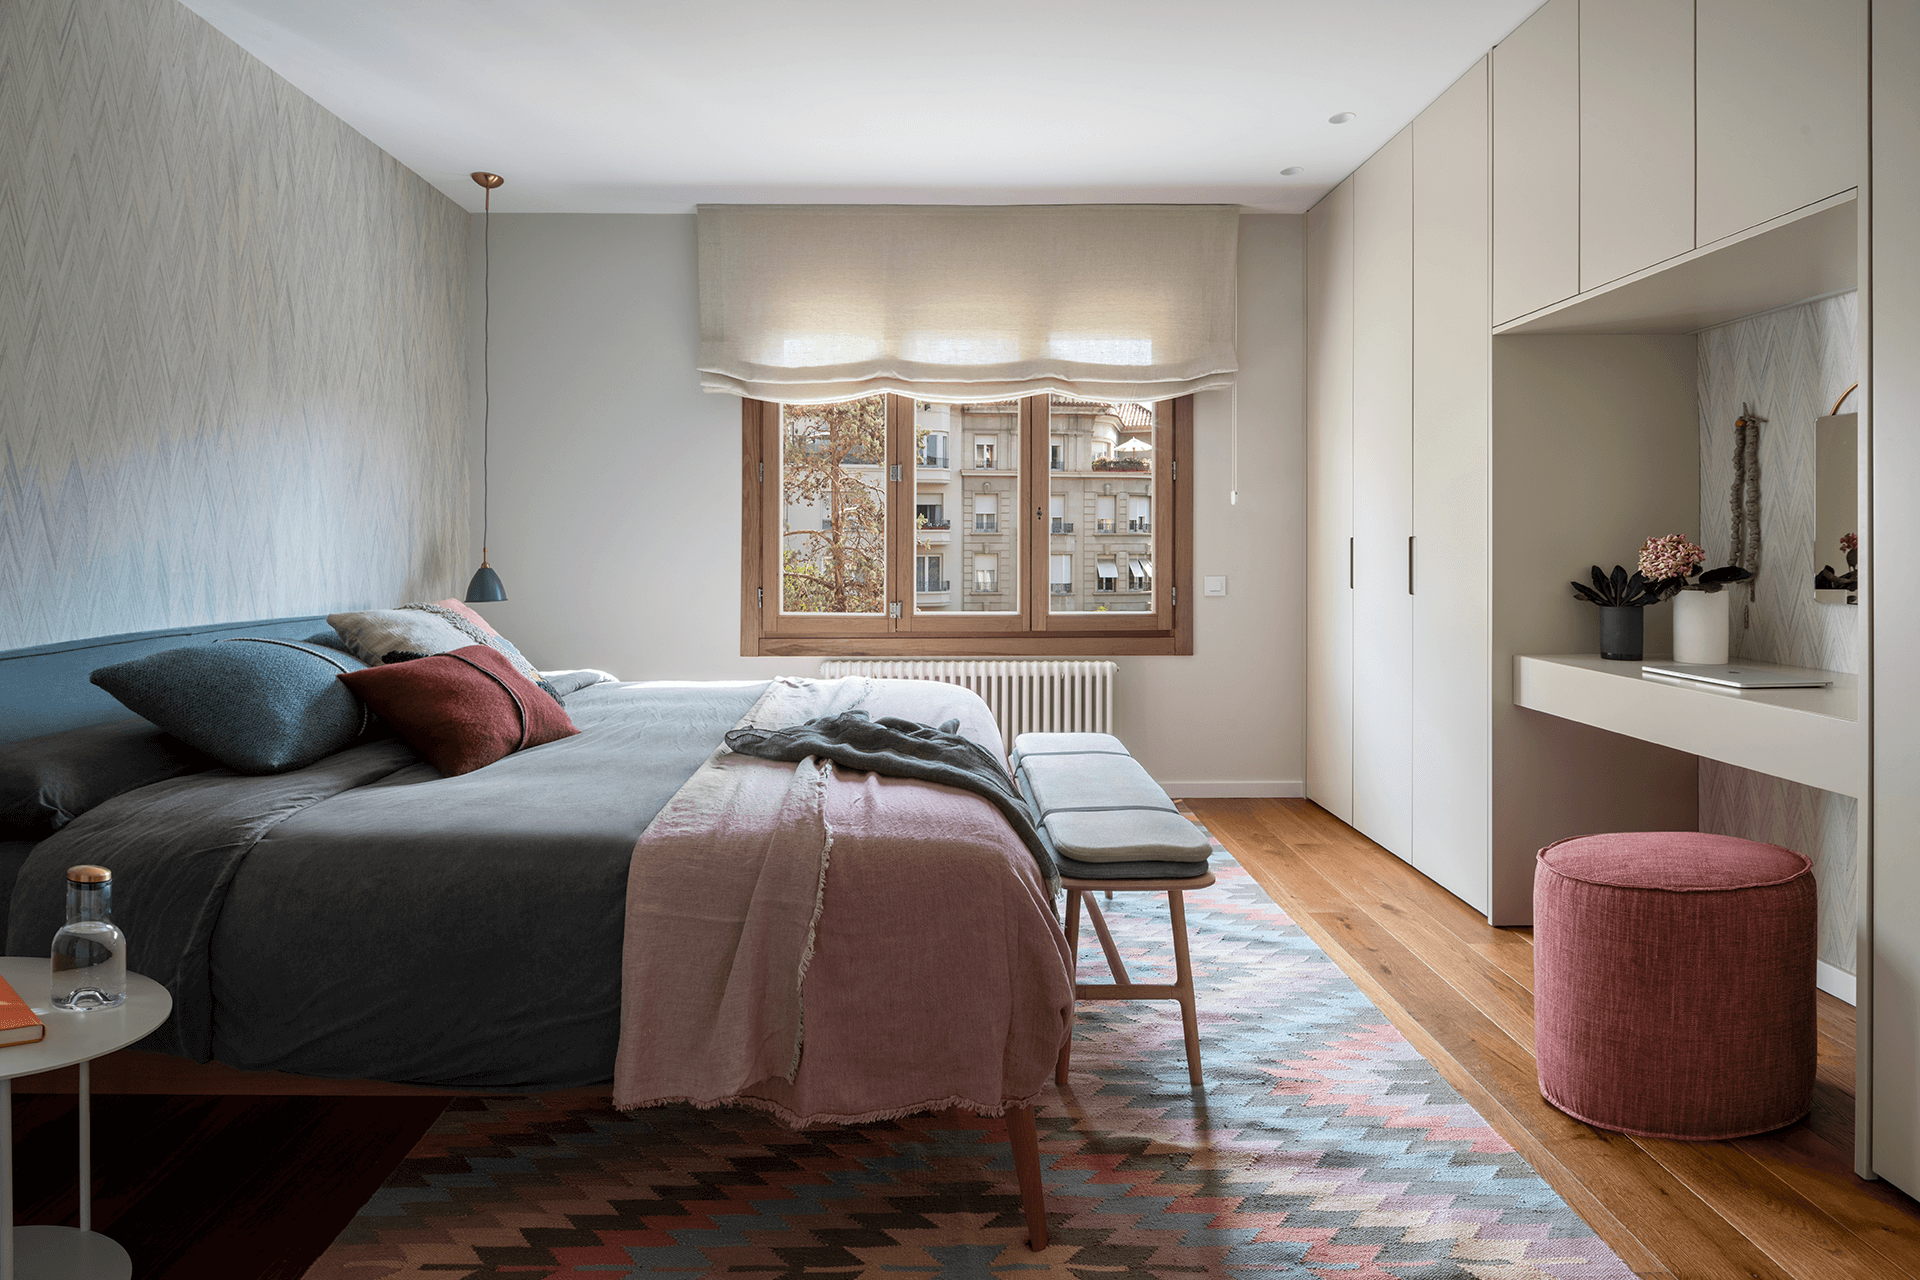 Interior Design Decor Barcelona | The Room Studio